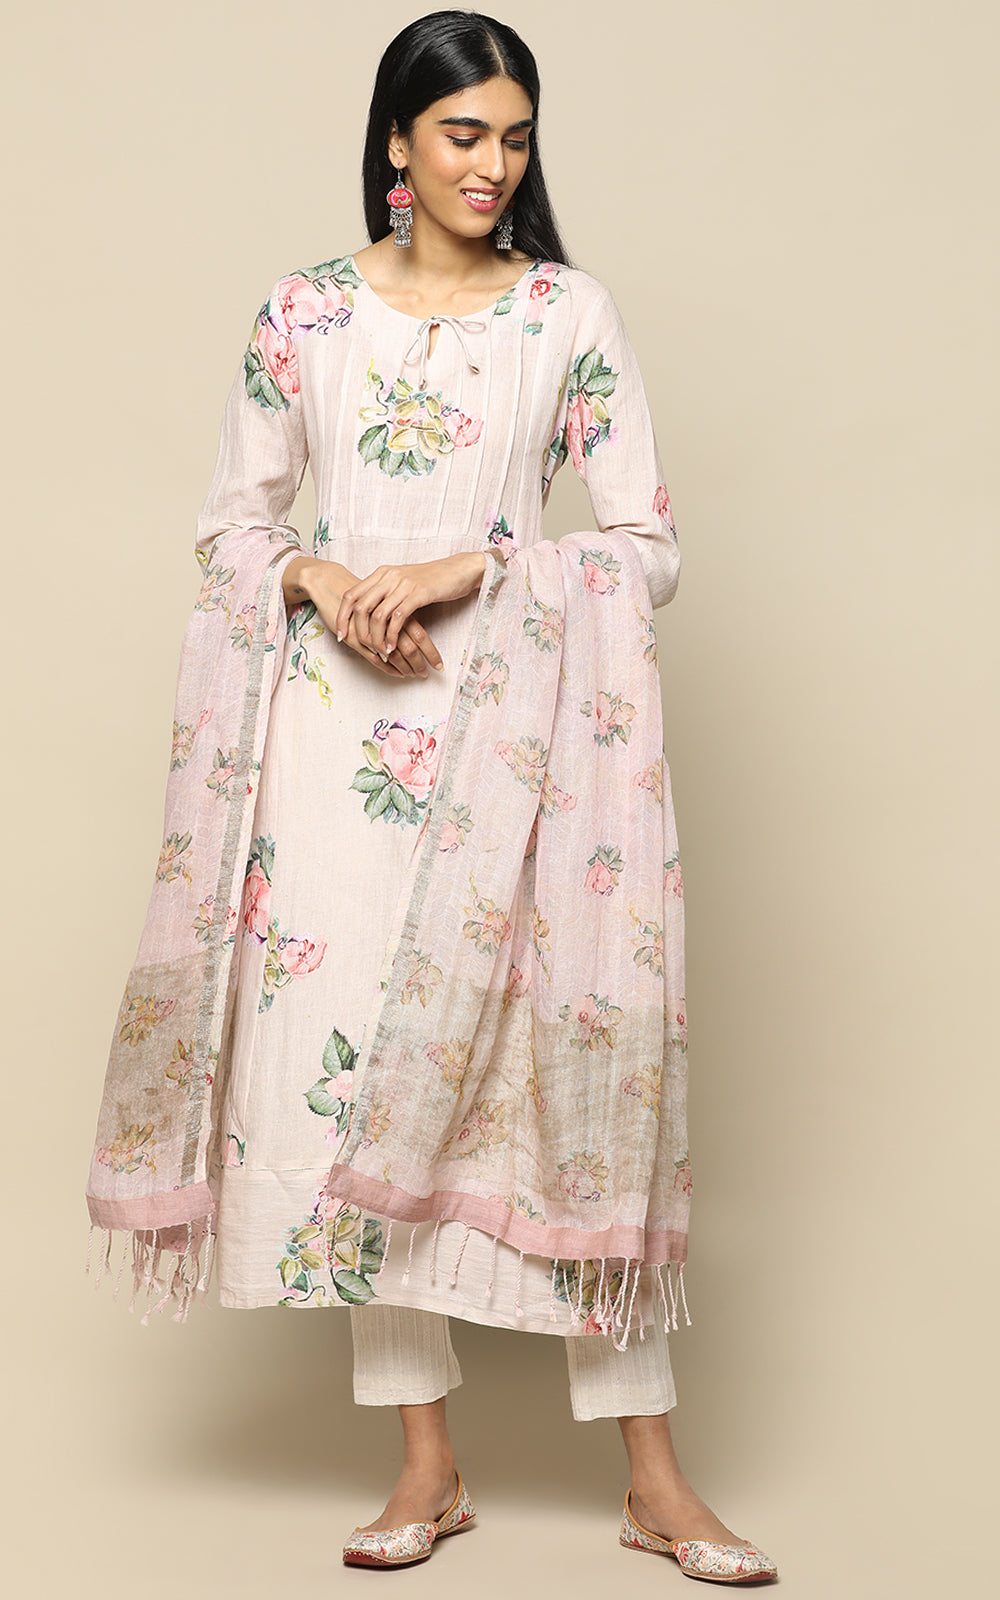 LIGHT BLUSH PINK LINEN KURTHA WITH PRINTED FLOWERS AND LINEN PRINTED DUPATTA